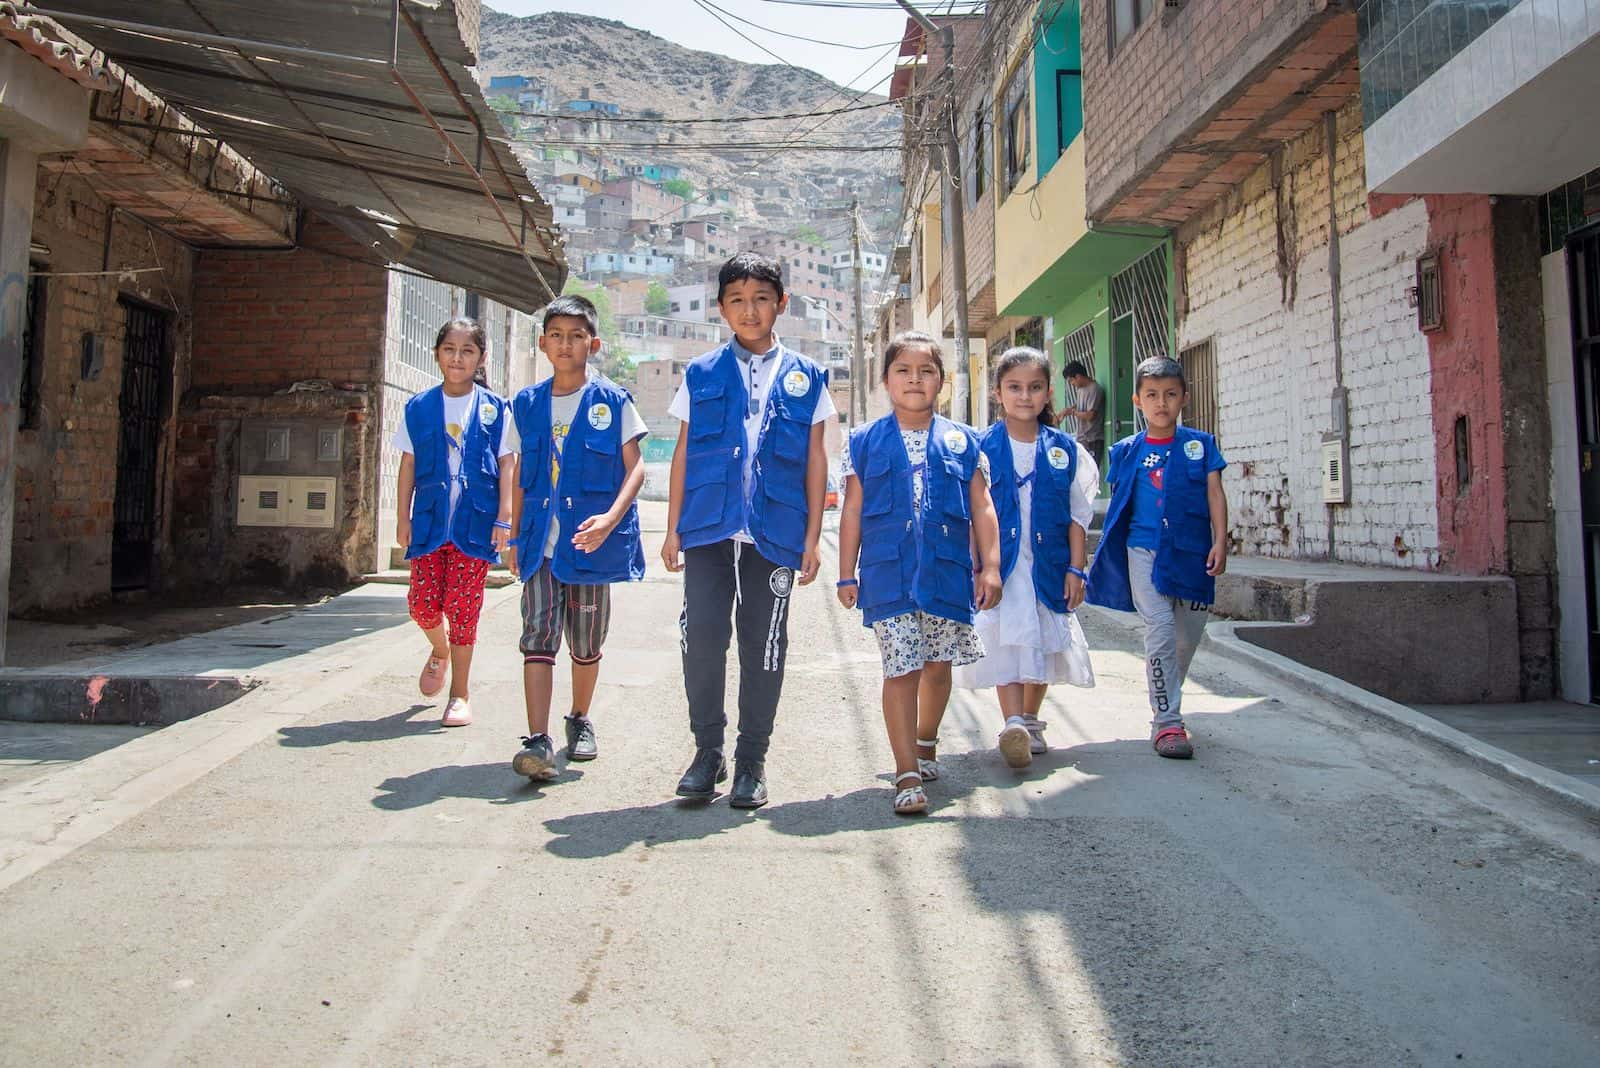 A group of children in blue vests walk down a street in Peru.